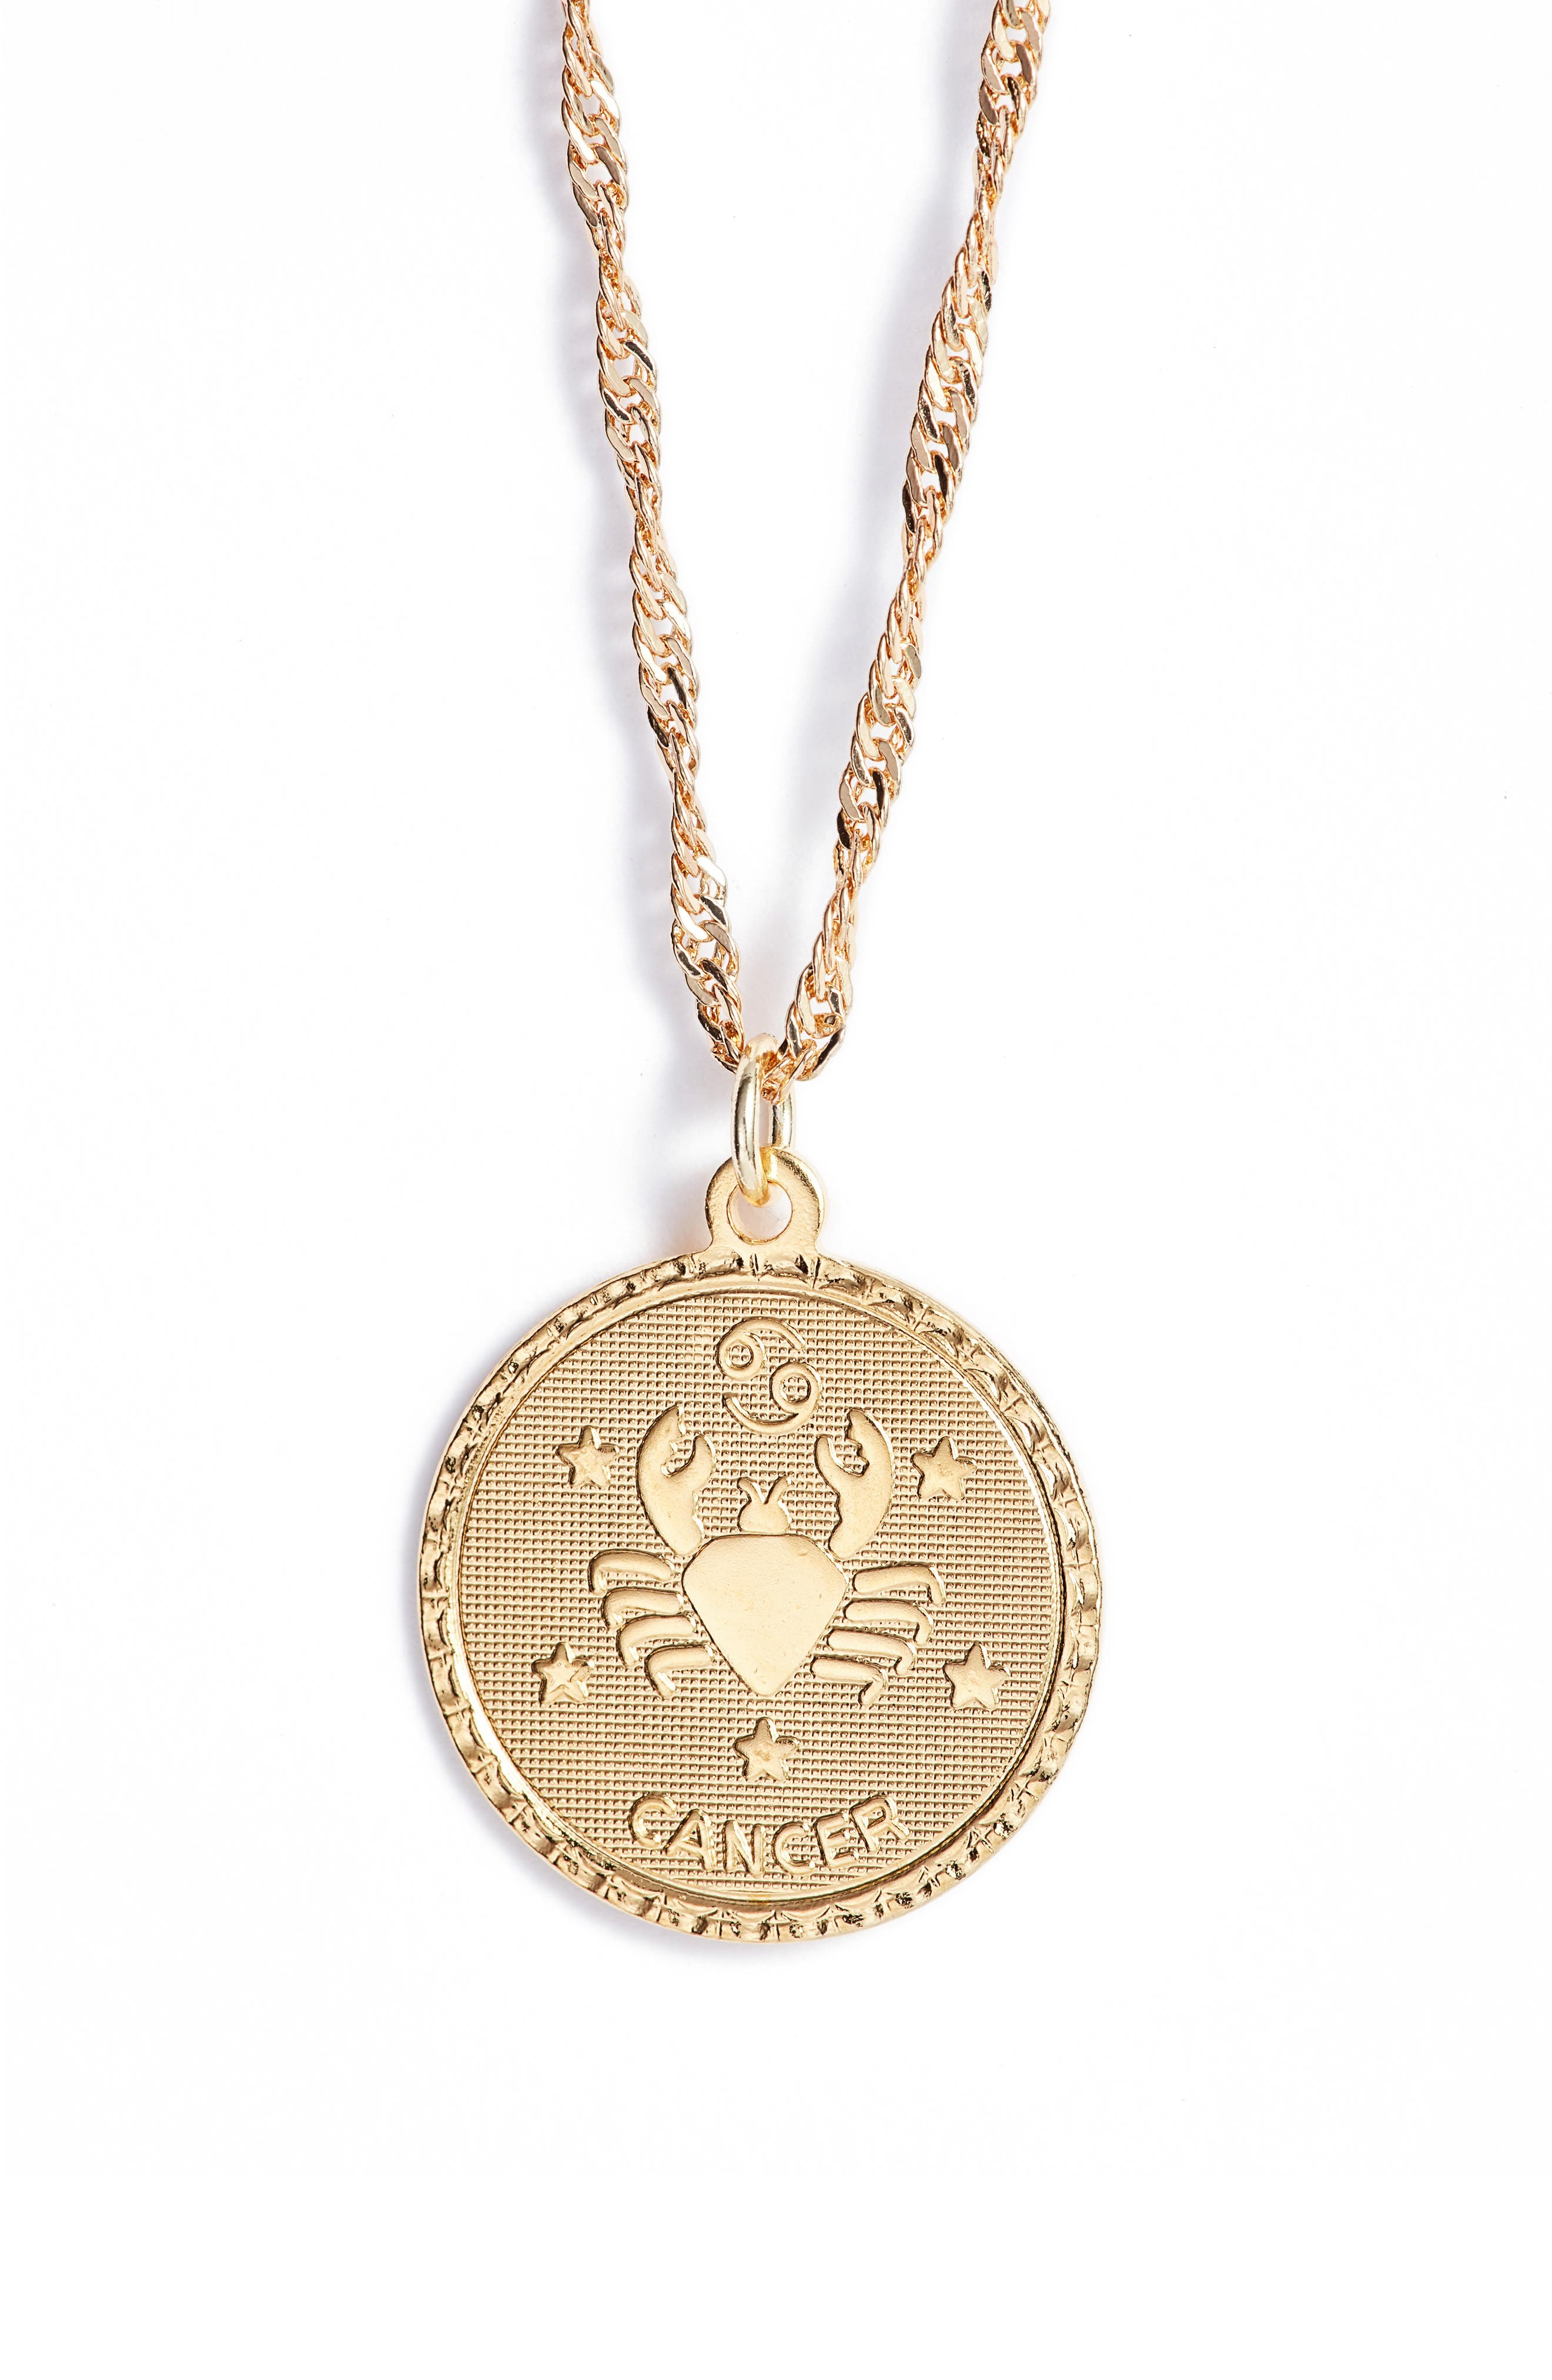 Ascending Cancer Pendant Necklace,                         Main,                         color, Yellow Gold